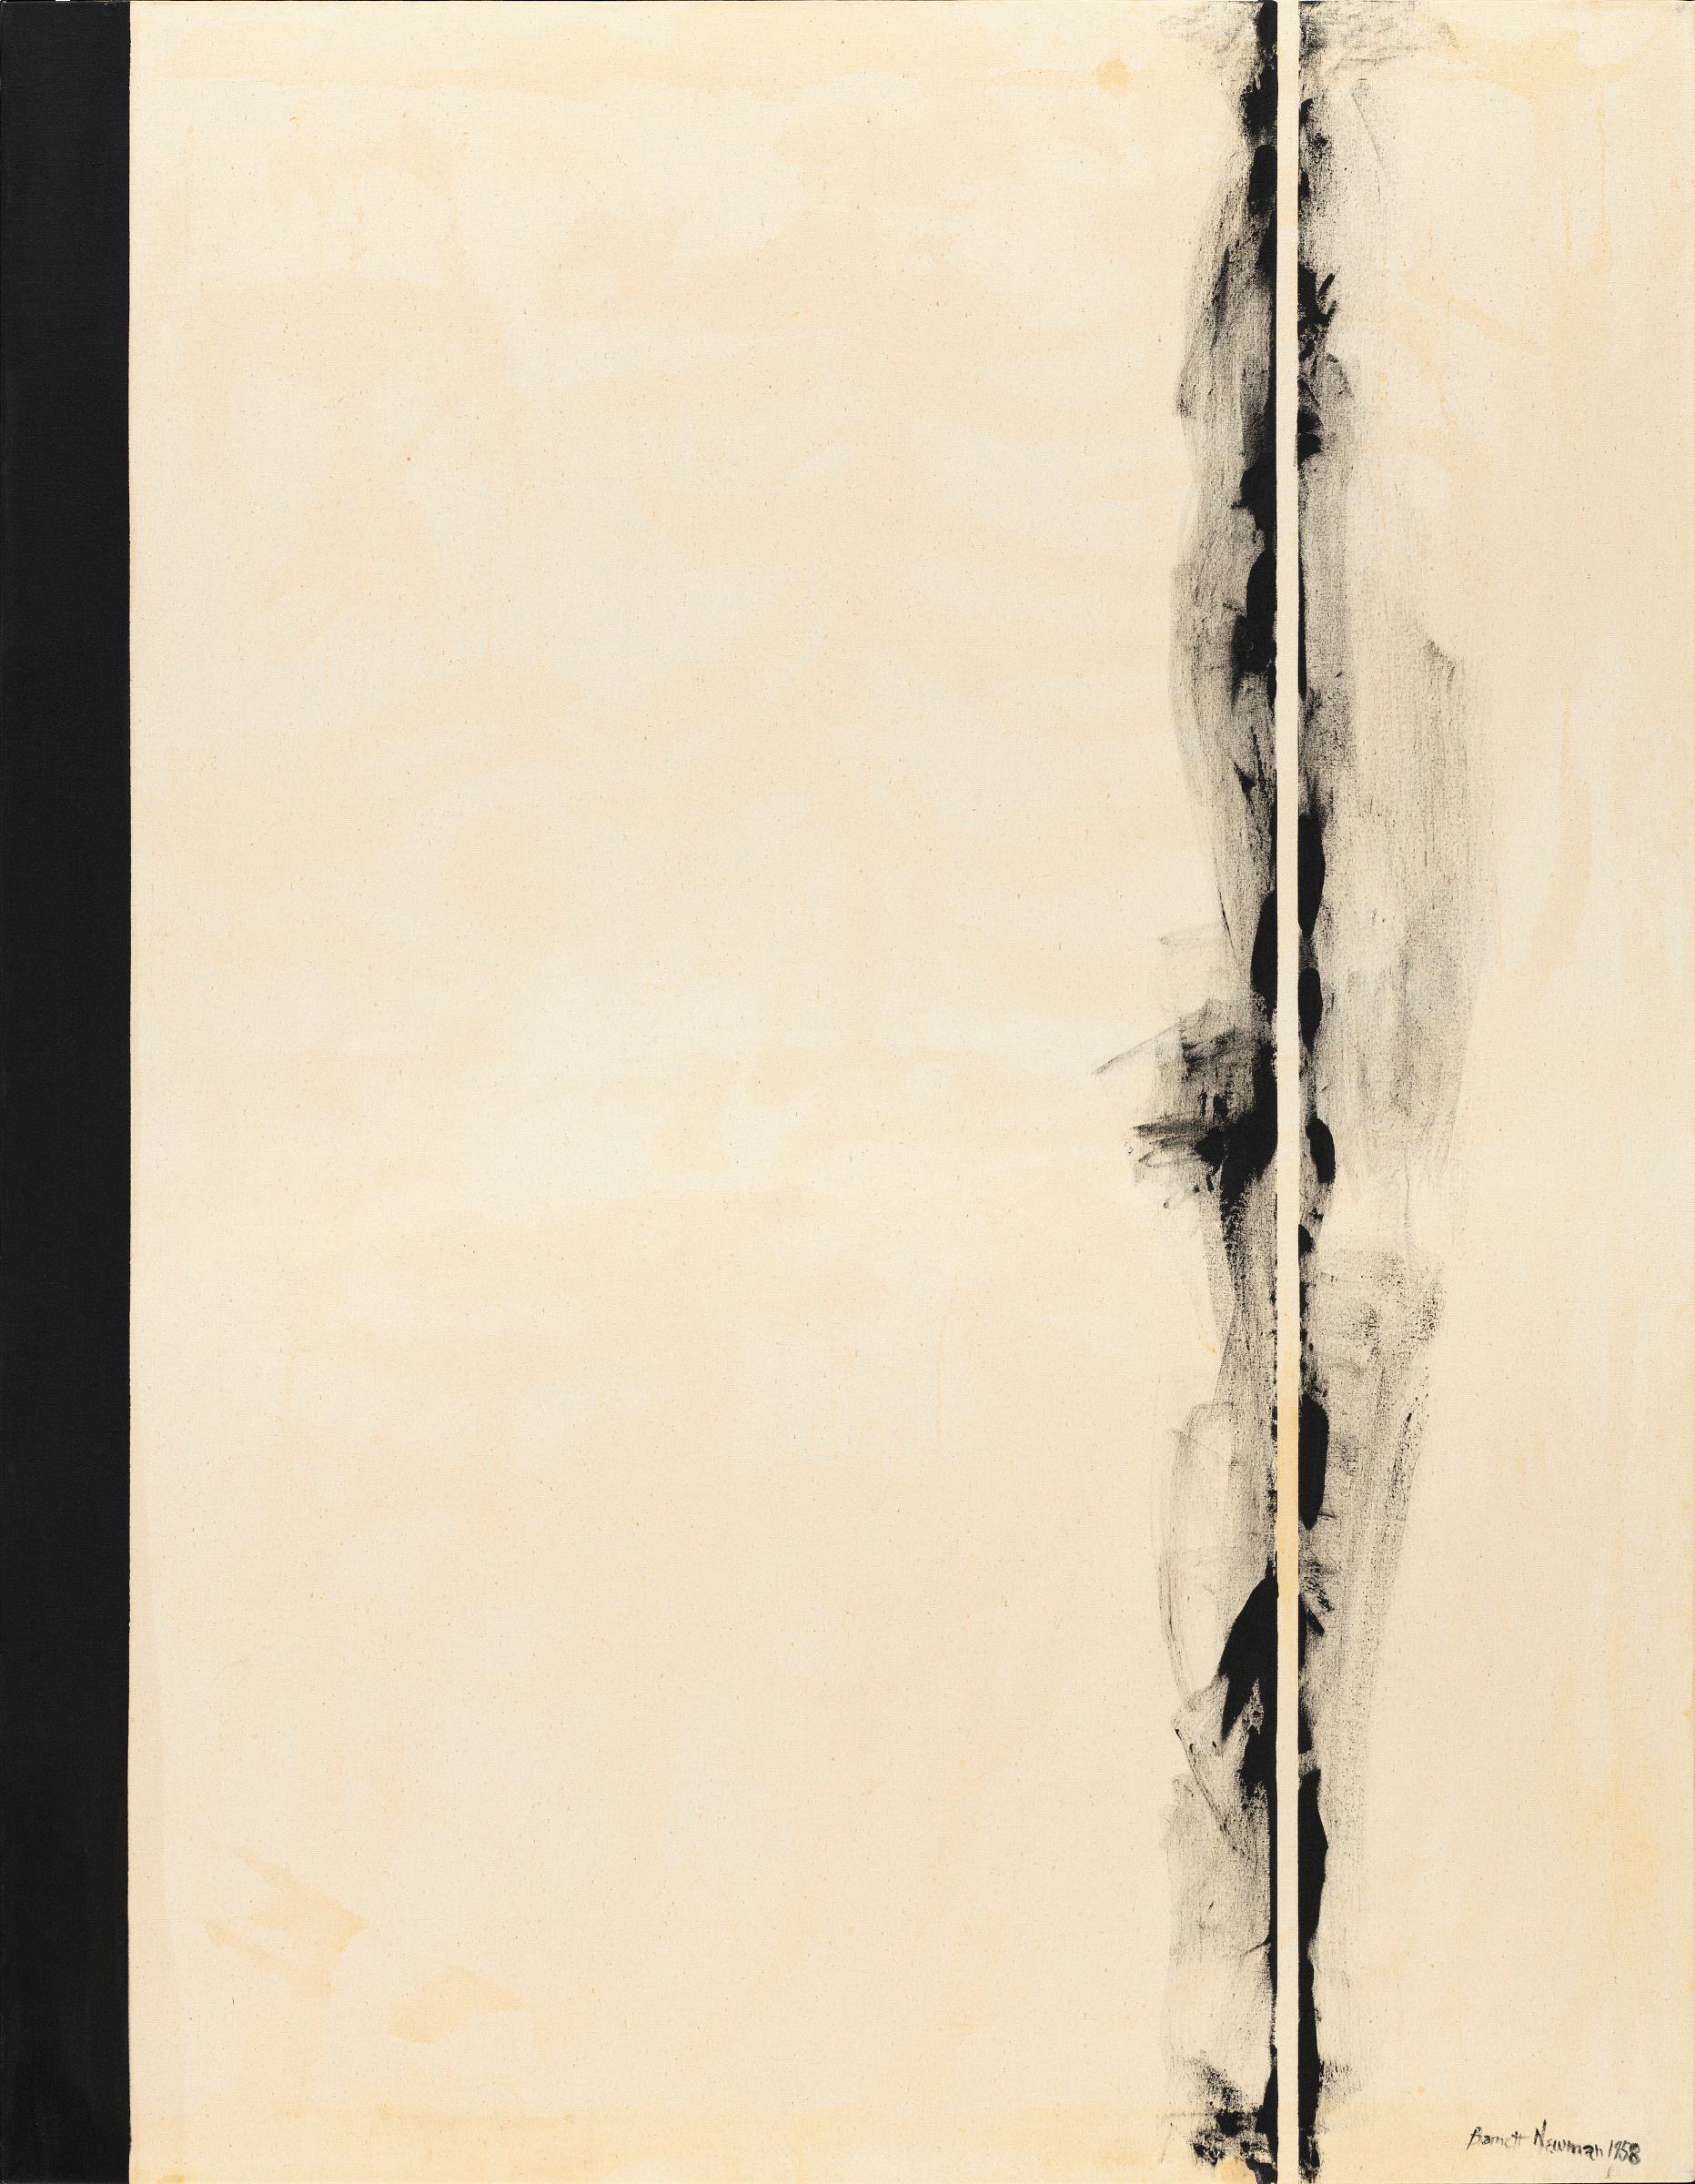 First Station (1958) (from the series Stations of the Cross, 1958-66) by Barnett Newman. As featured in our book Abstract Expressionism